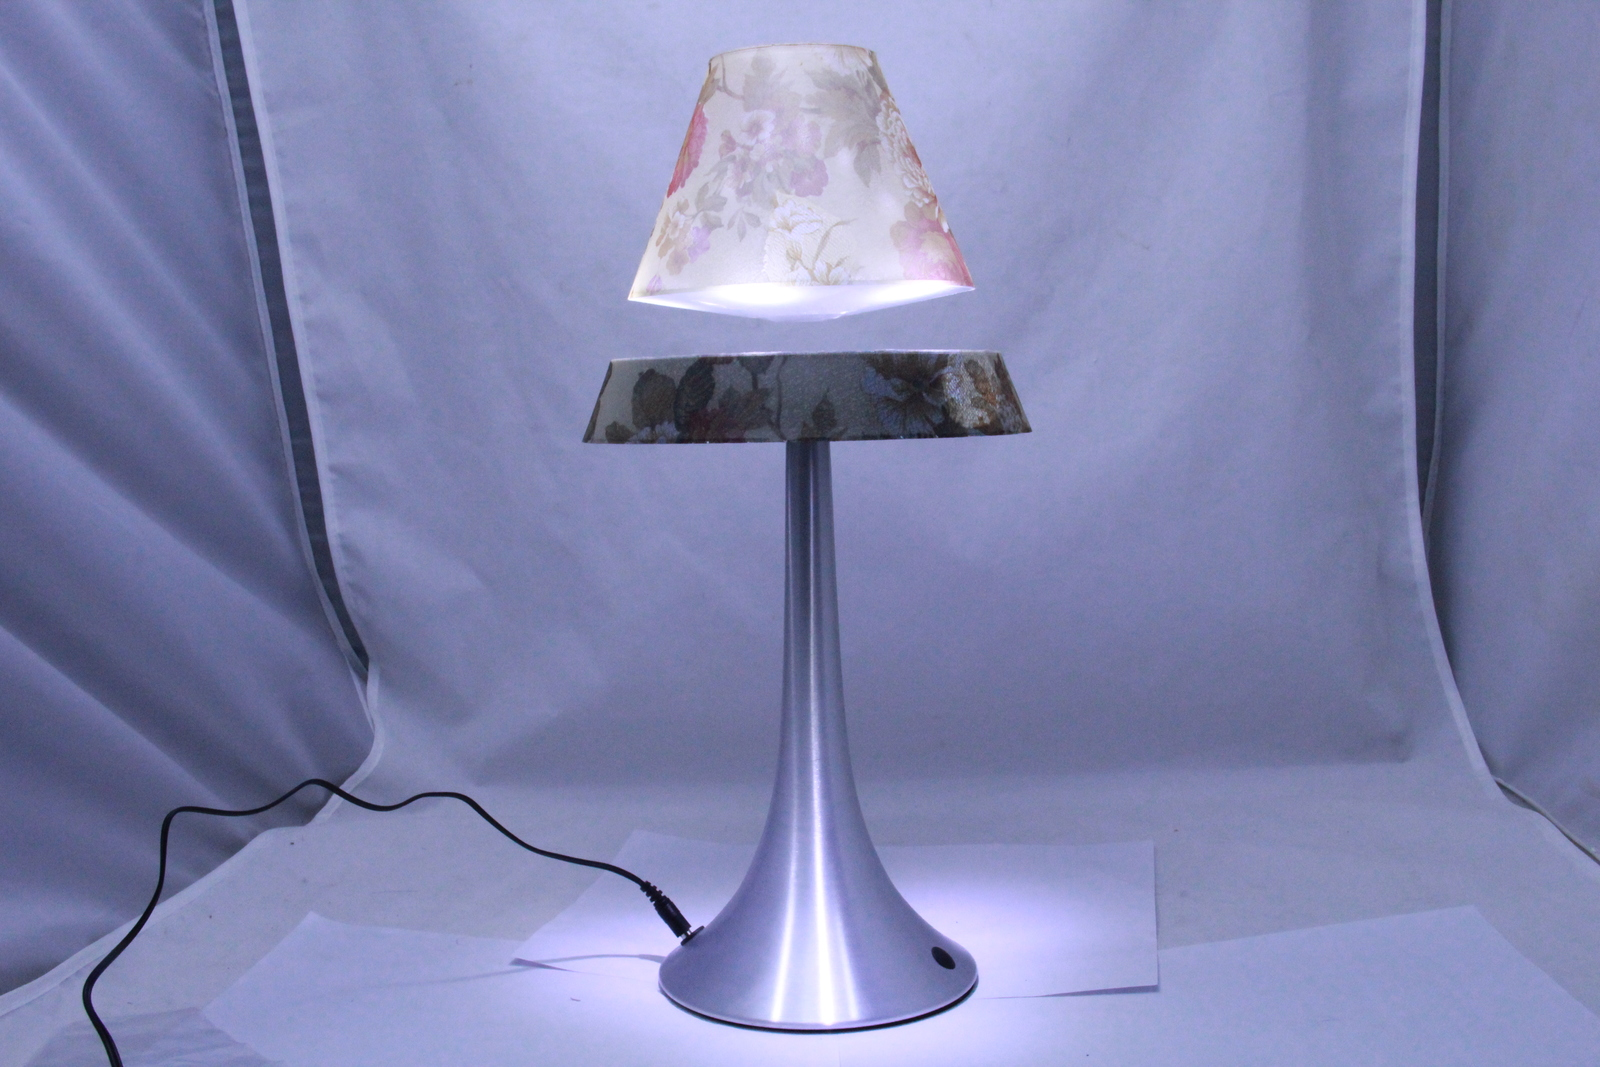 The Amazing Floating/Levitating Lamp - Floral Pattern Base and Shade -- Get One